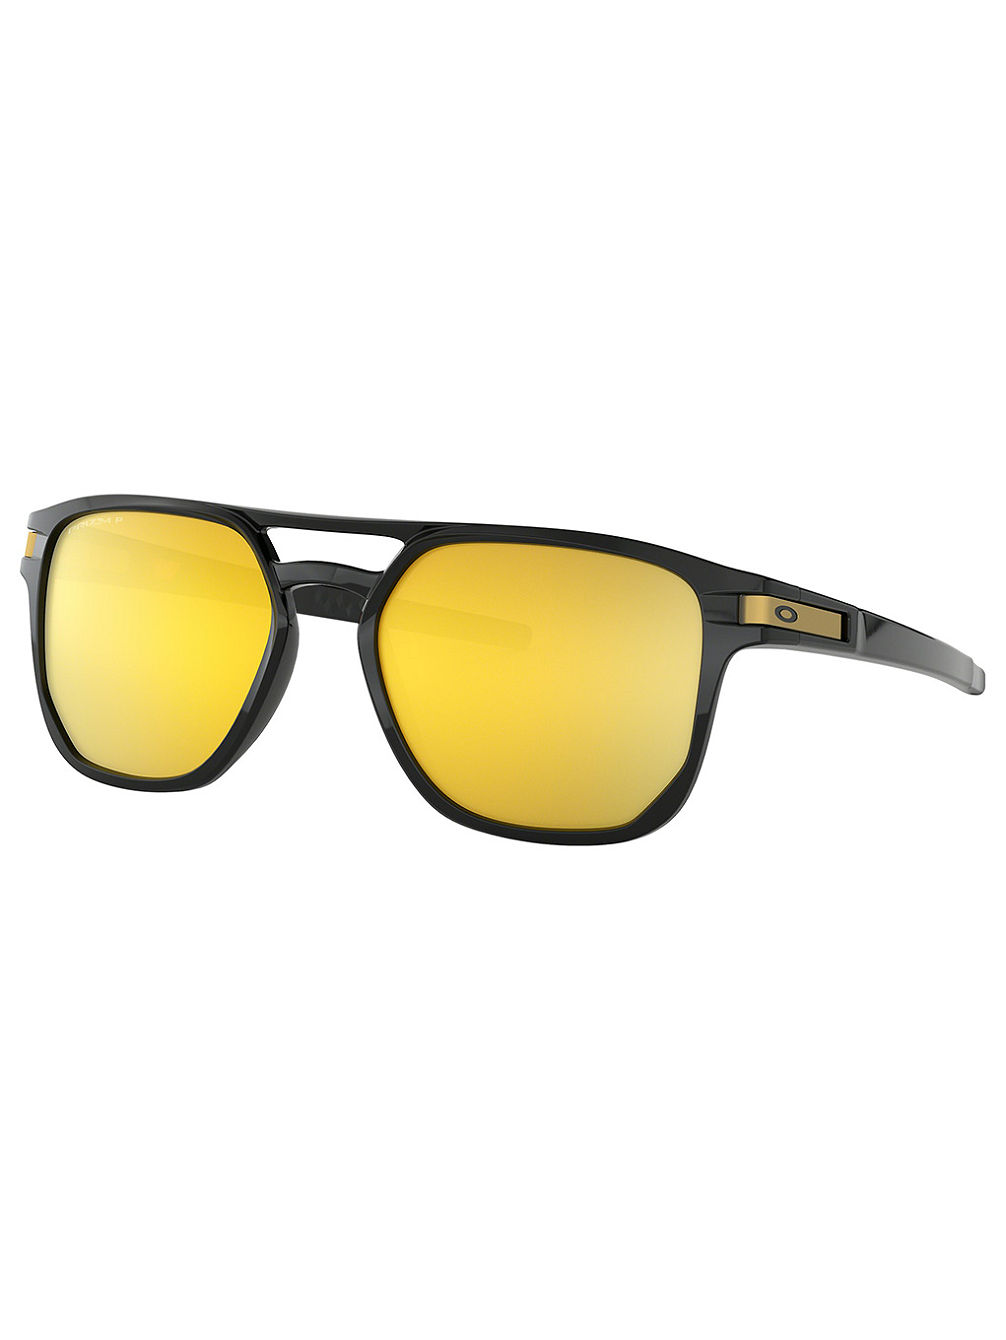 Latch Beta Polished Black Sonnenbrille